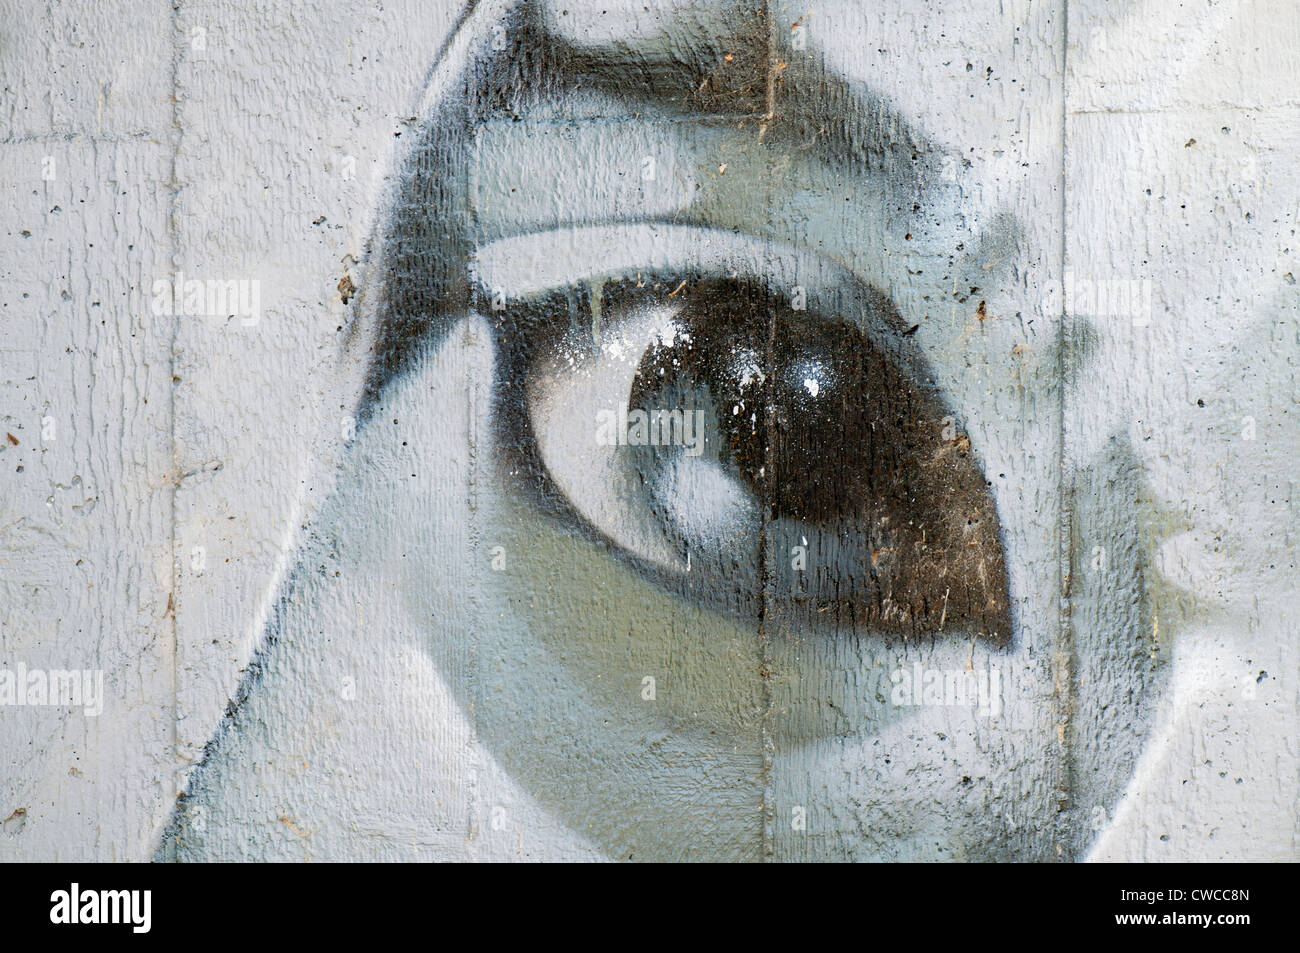 Detail of a graffiti painted on a concrete wall. - Stock Image